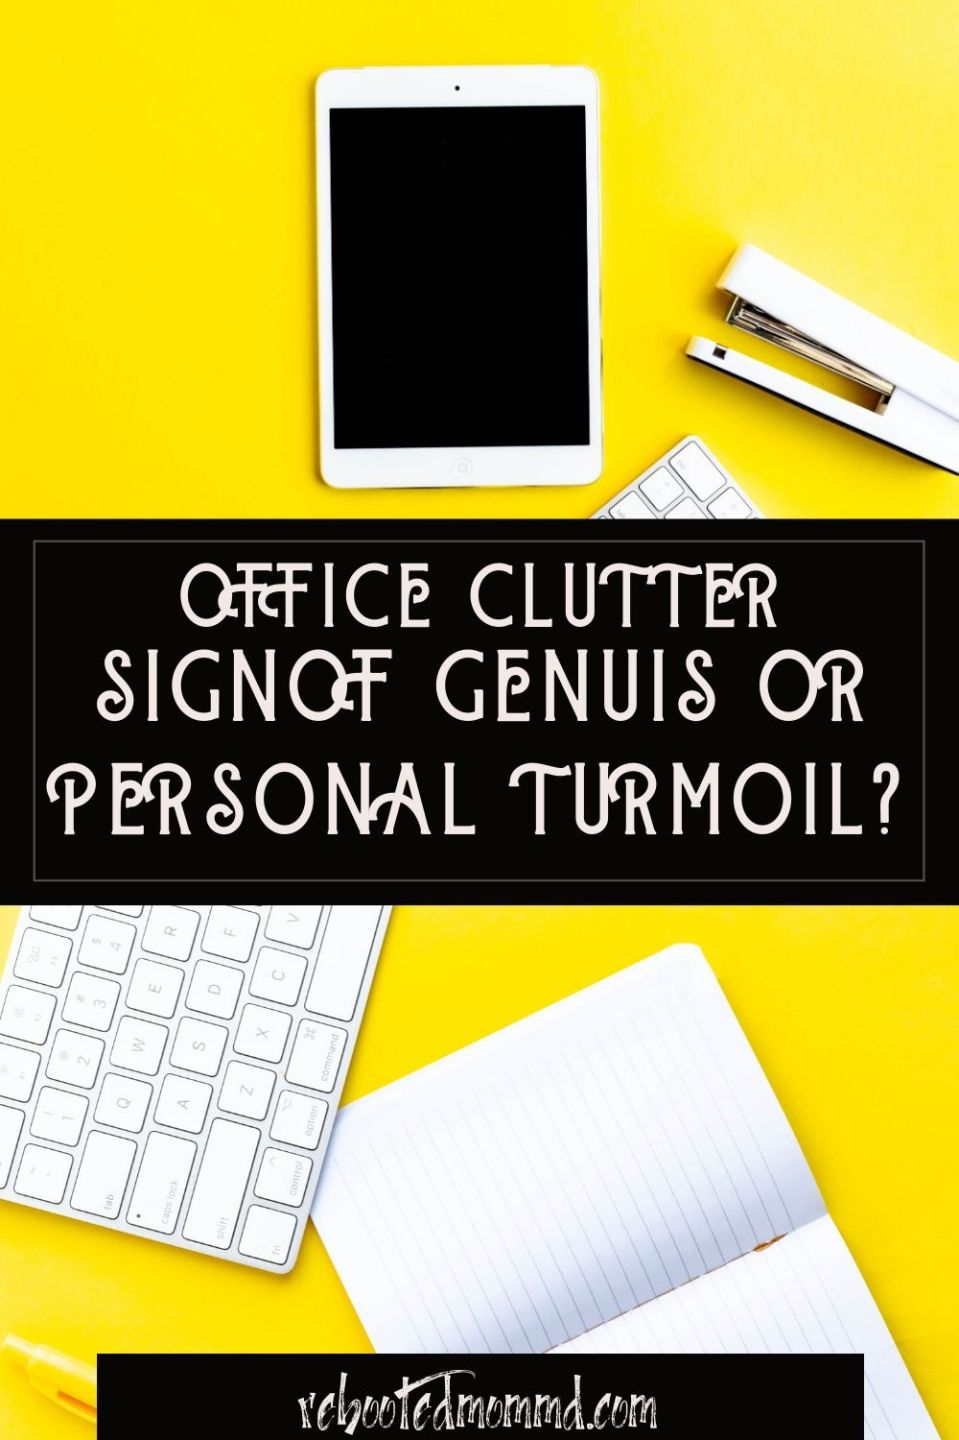 Office Clutter:  Internal Struggles or a Sign You are a Genius?